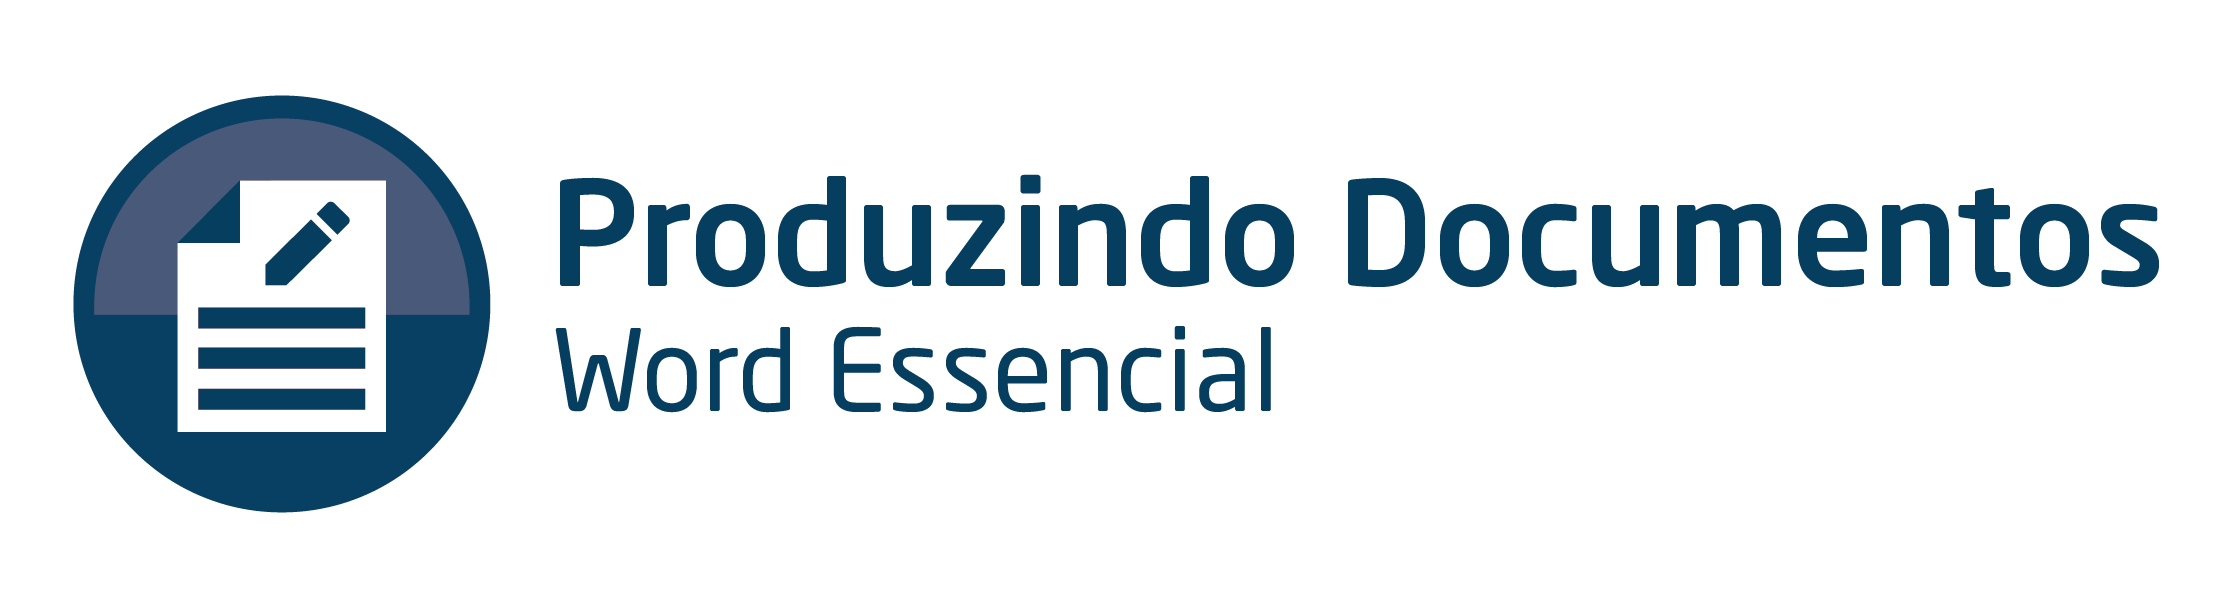 Produzindo documentos - Word Essencial